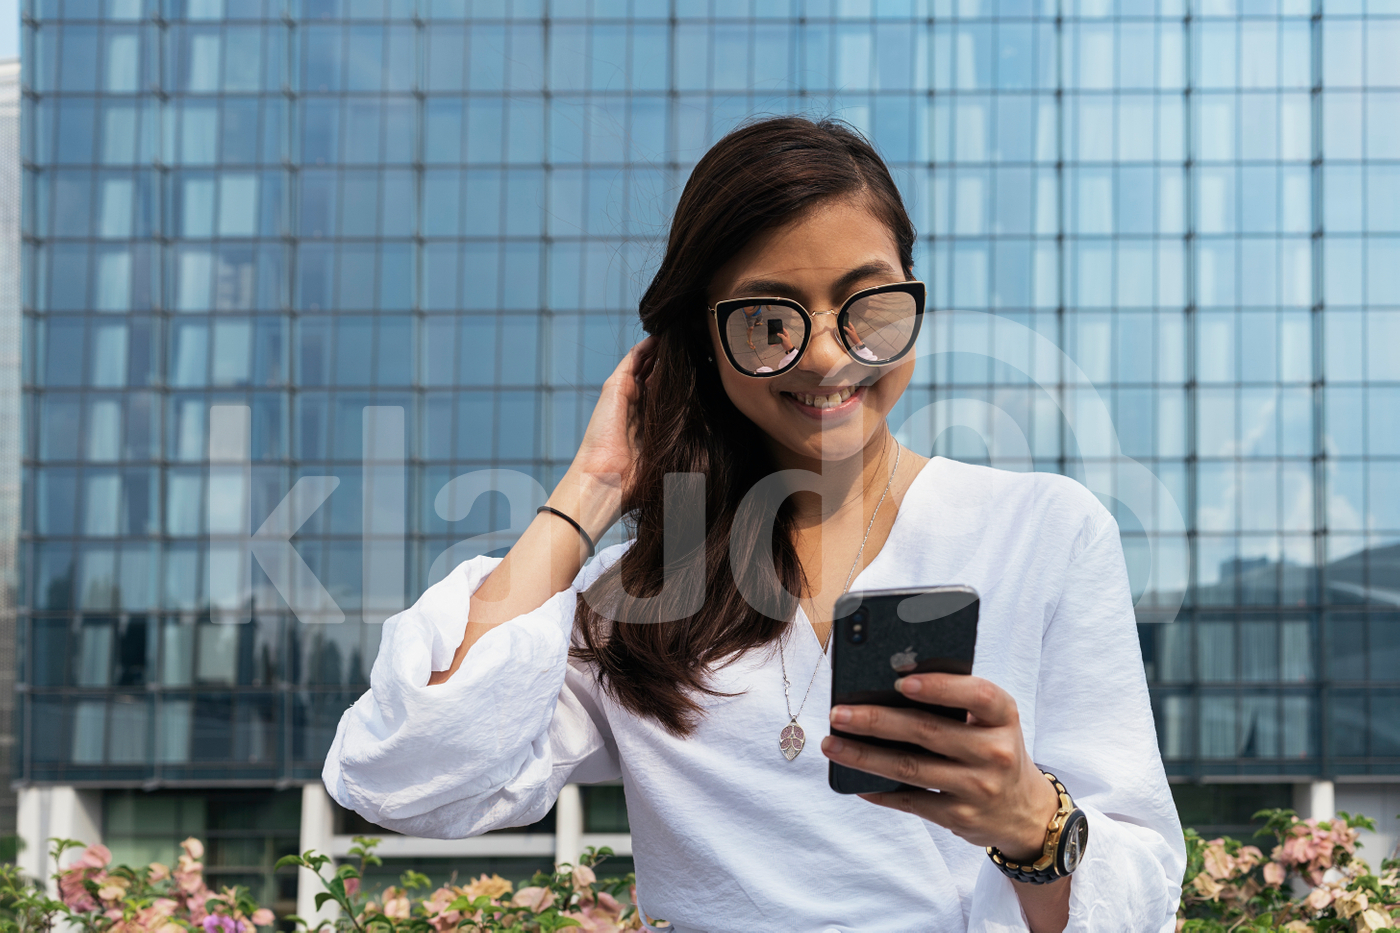 Portrait of young beautiful woman using smartphone